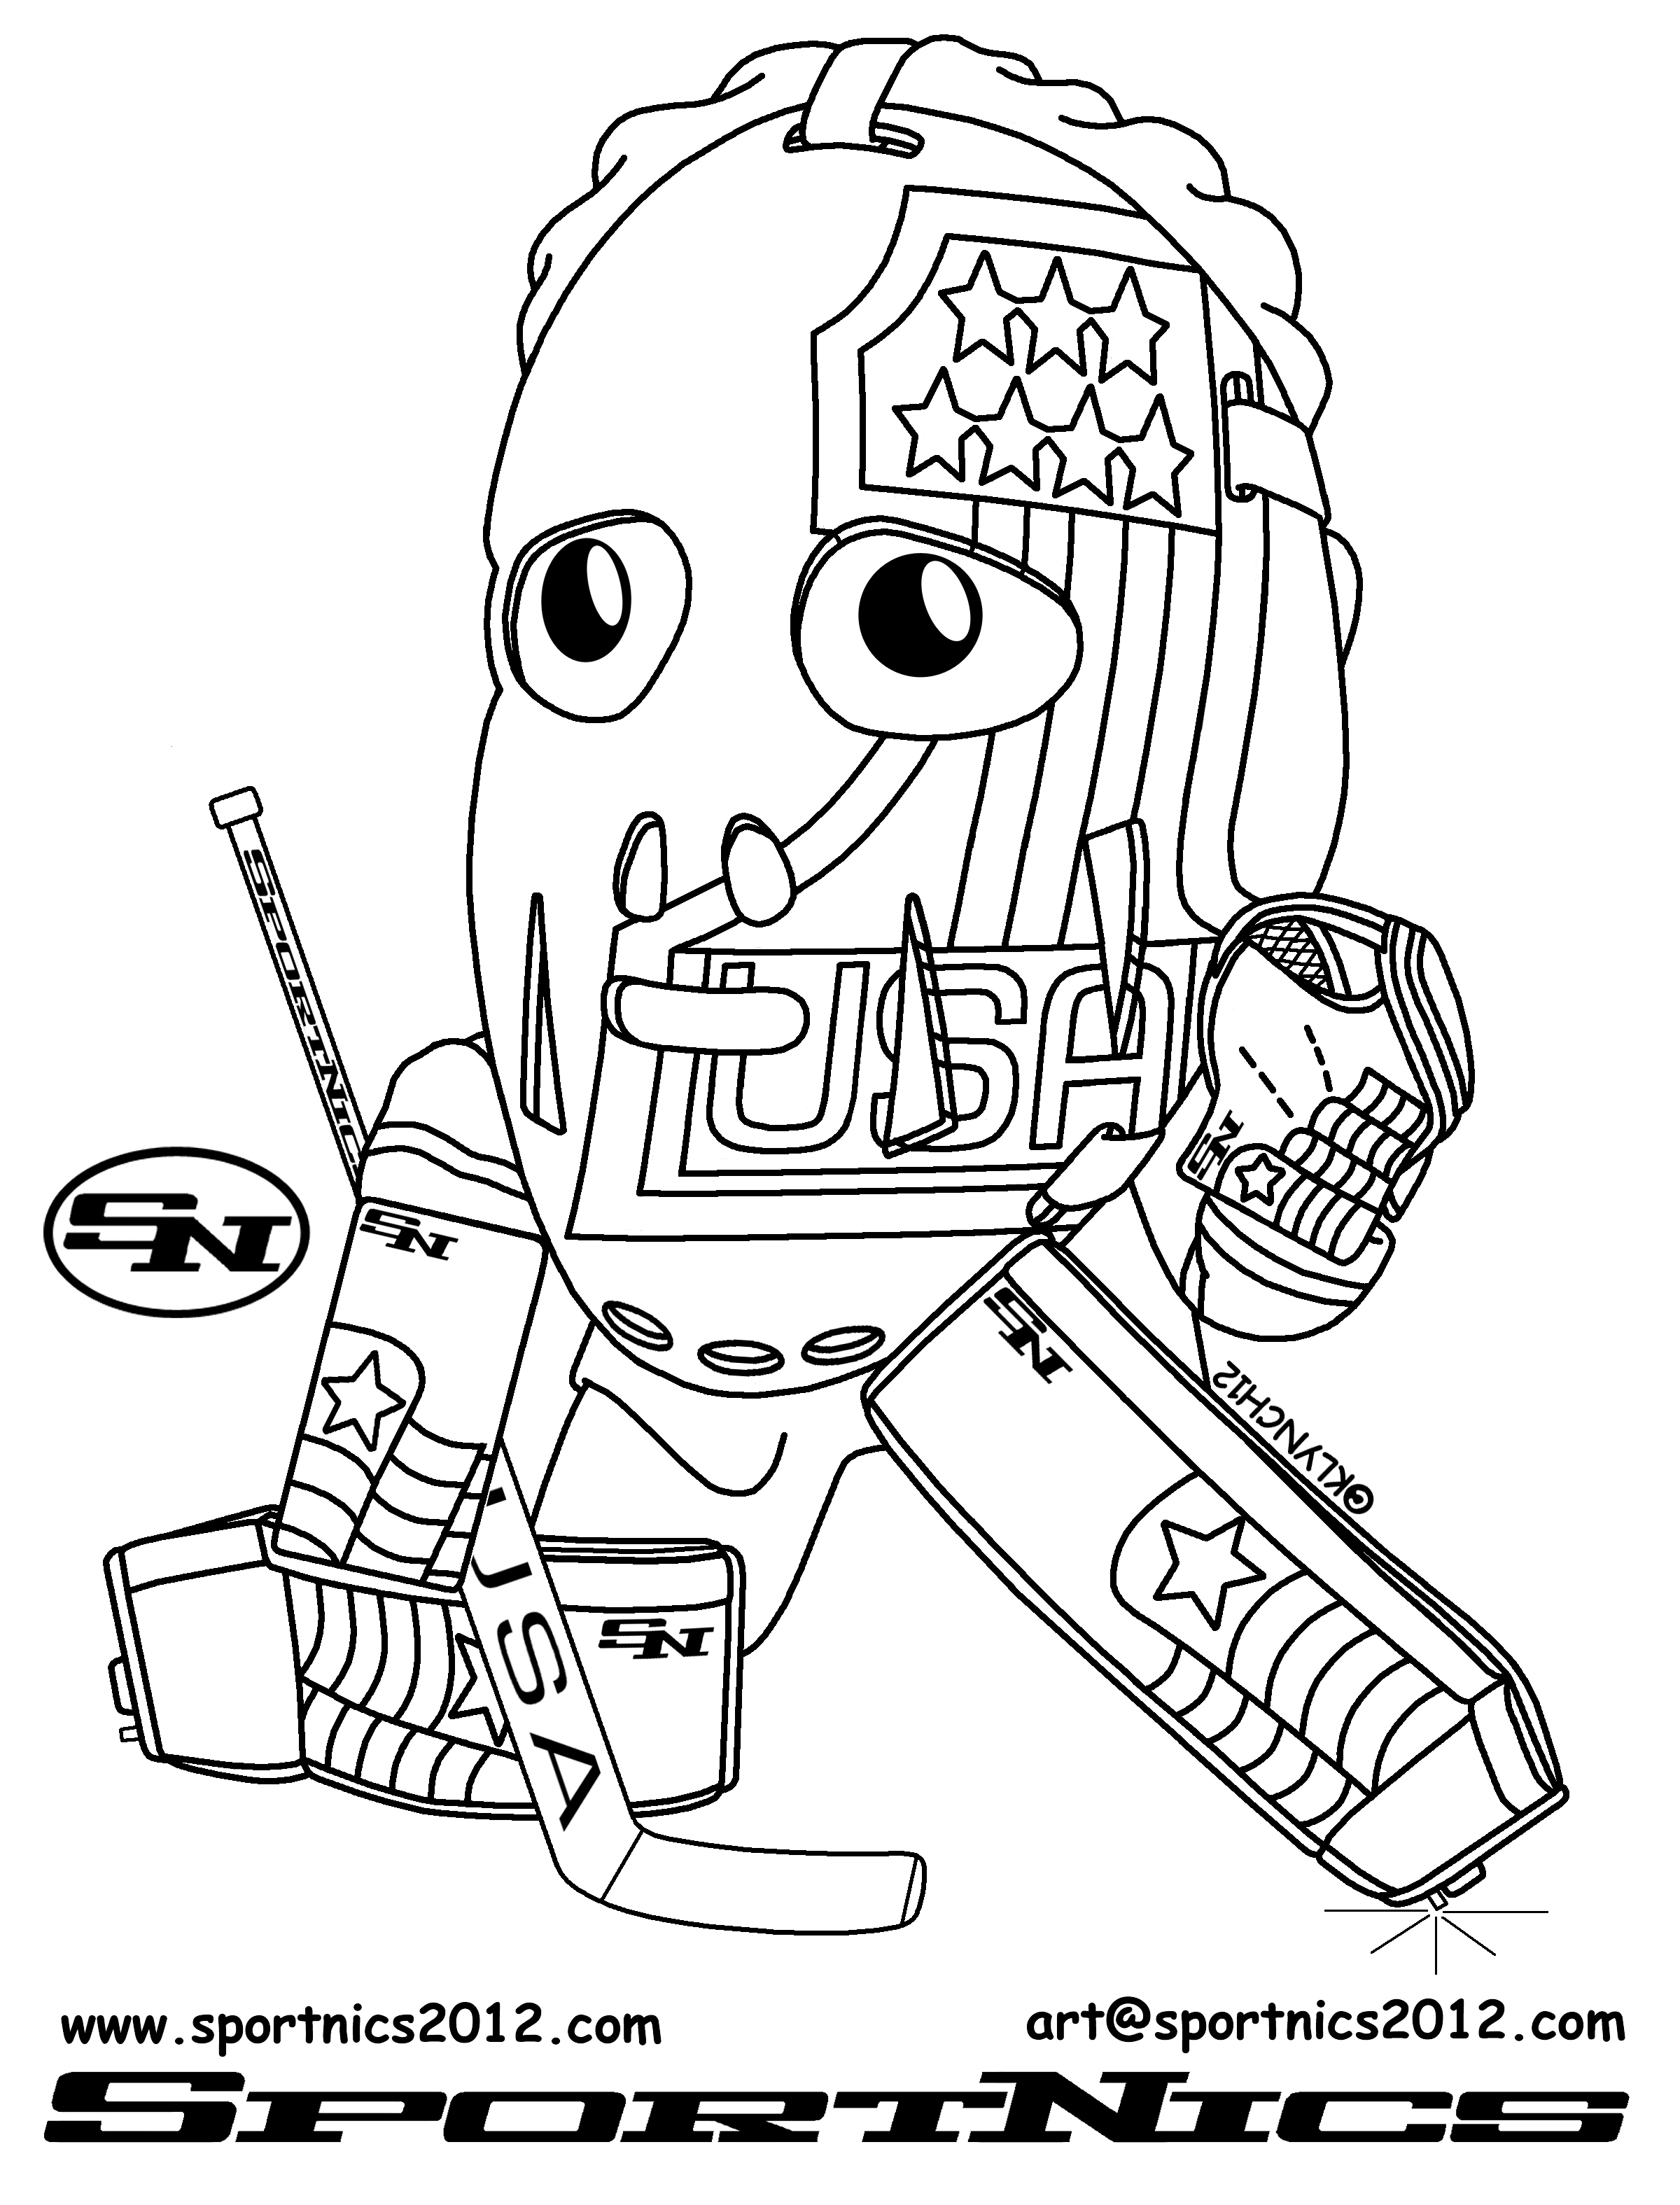 sports coloring pages hockey goalie - photo#18